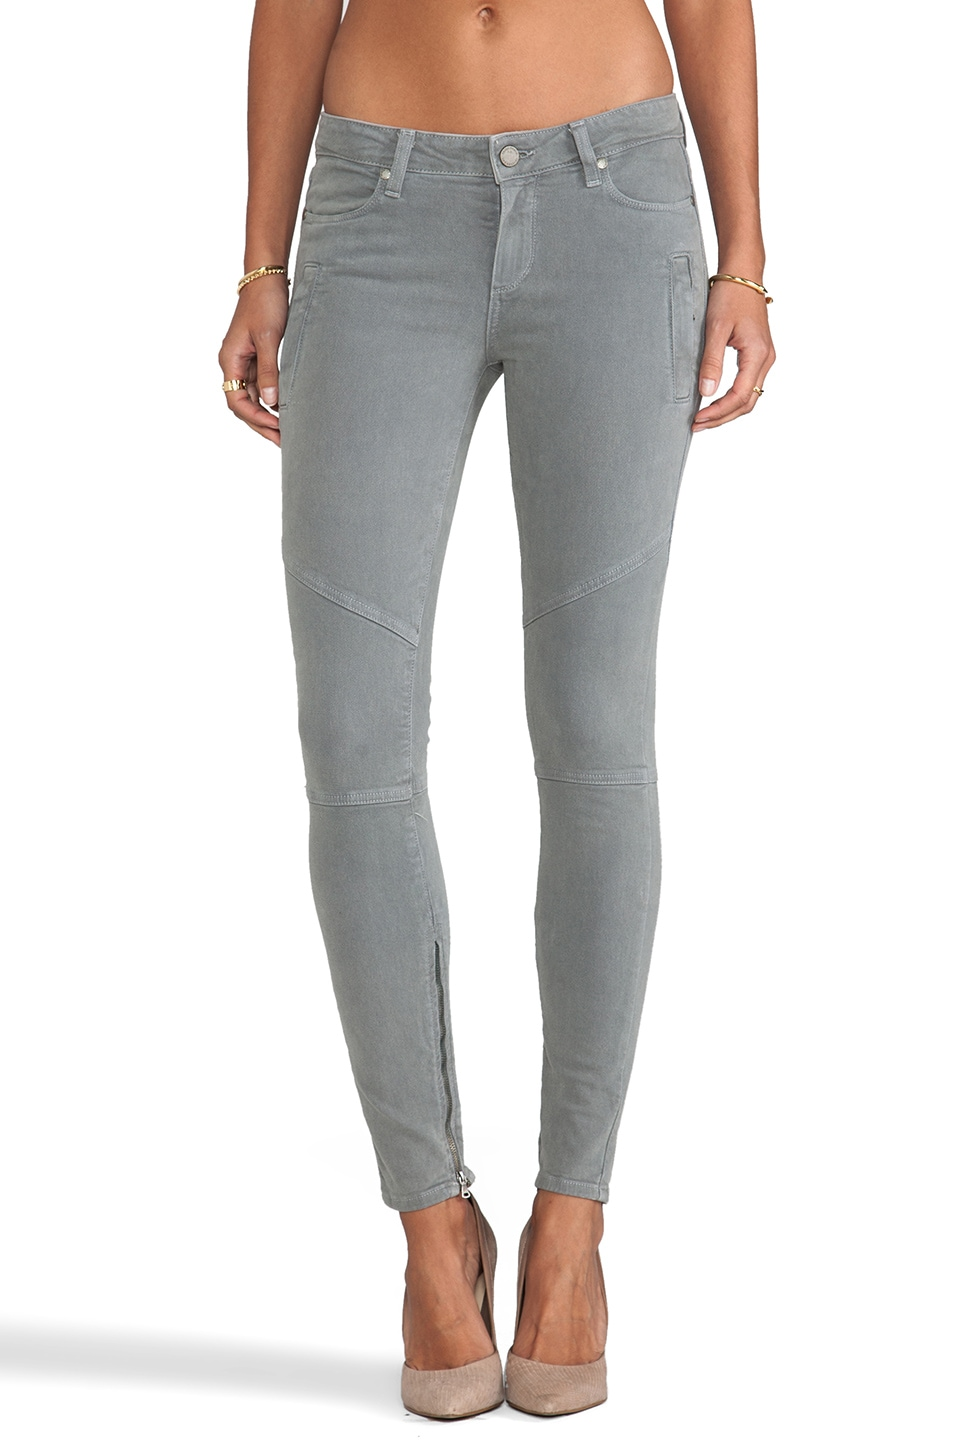 Paige Denim Marley Skinny in Cloud Cover